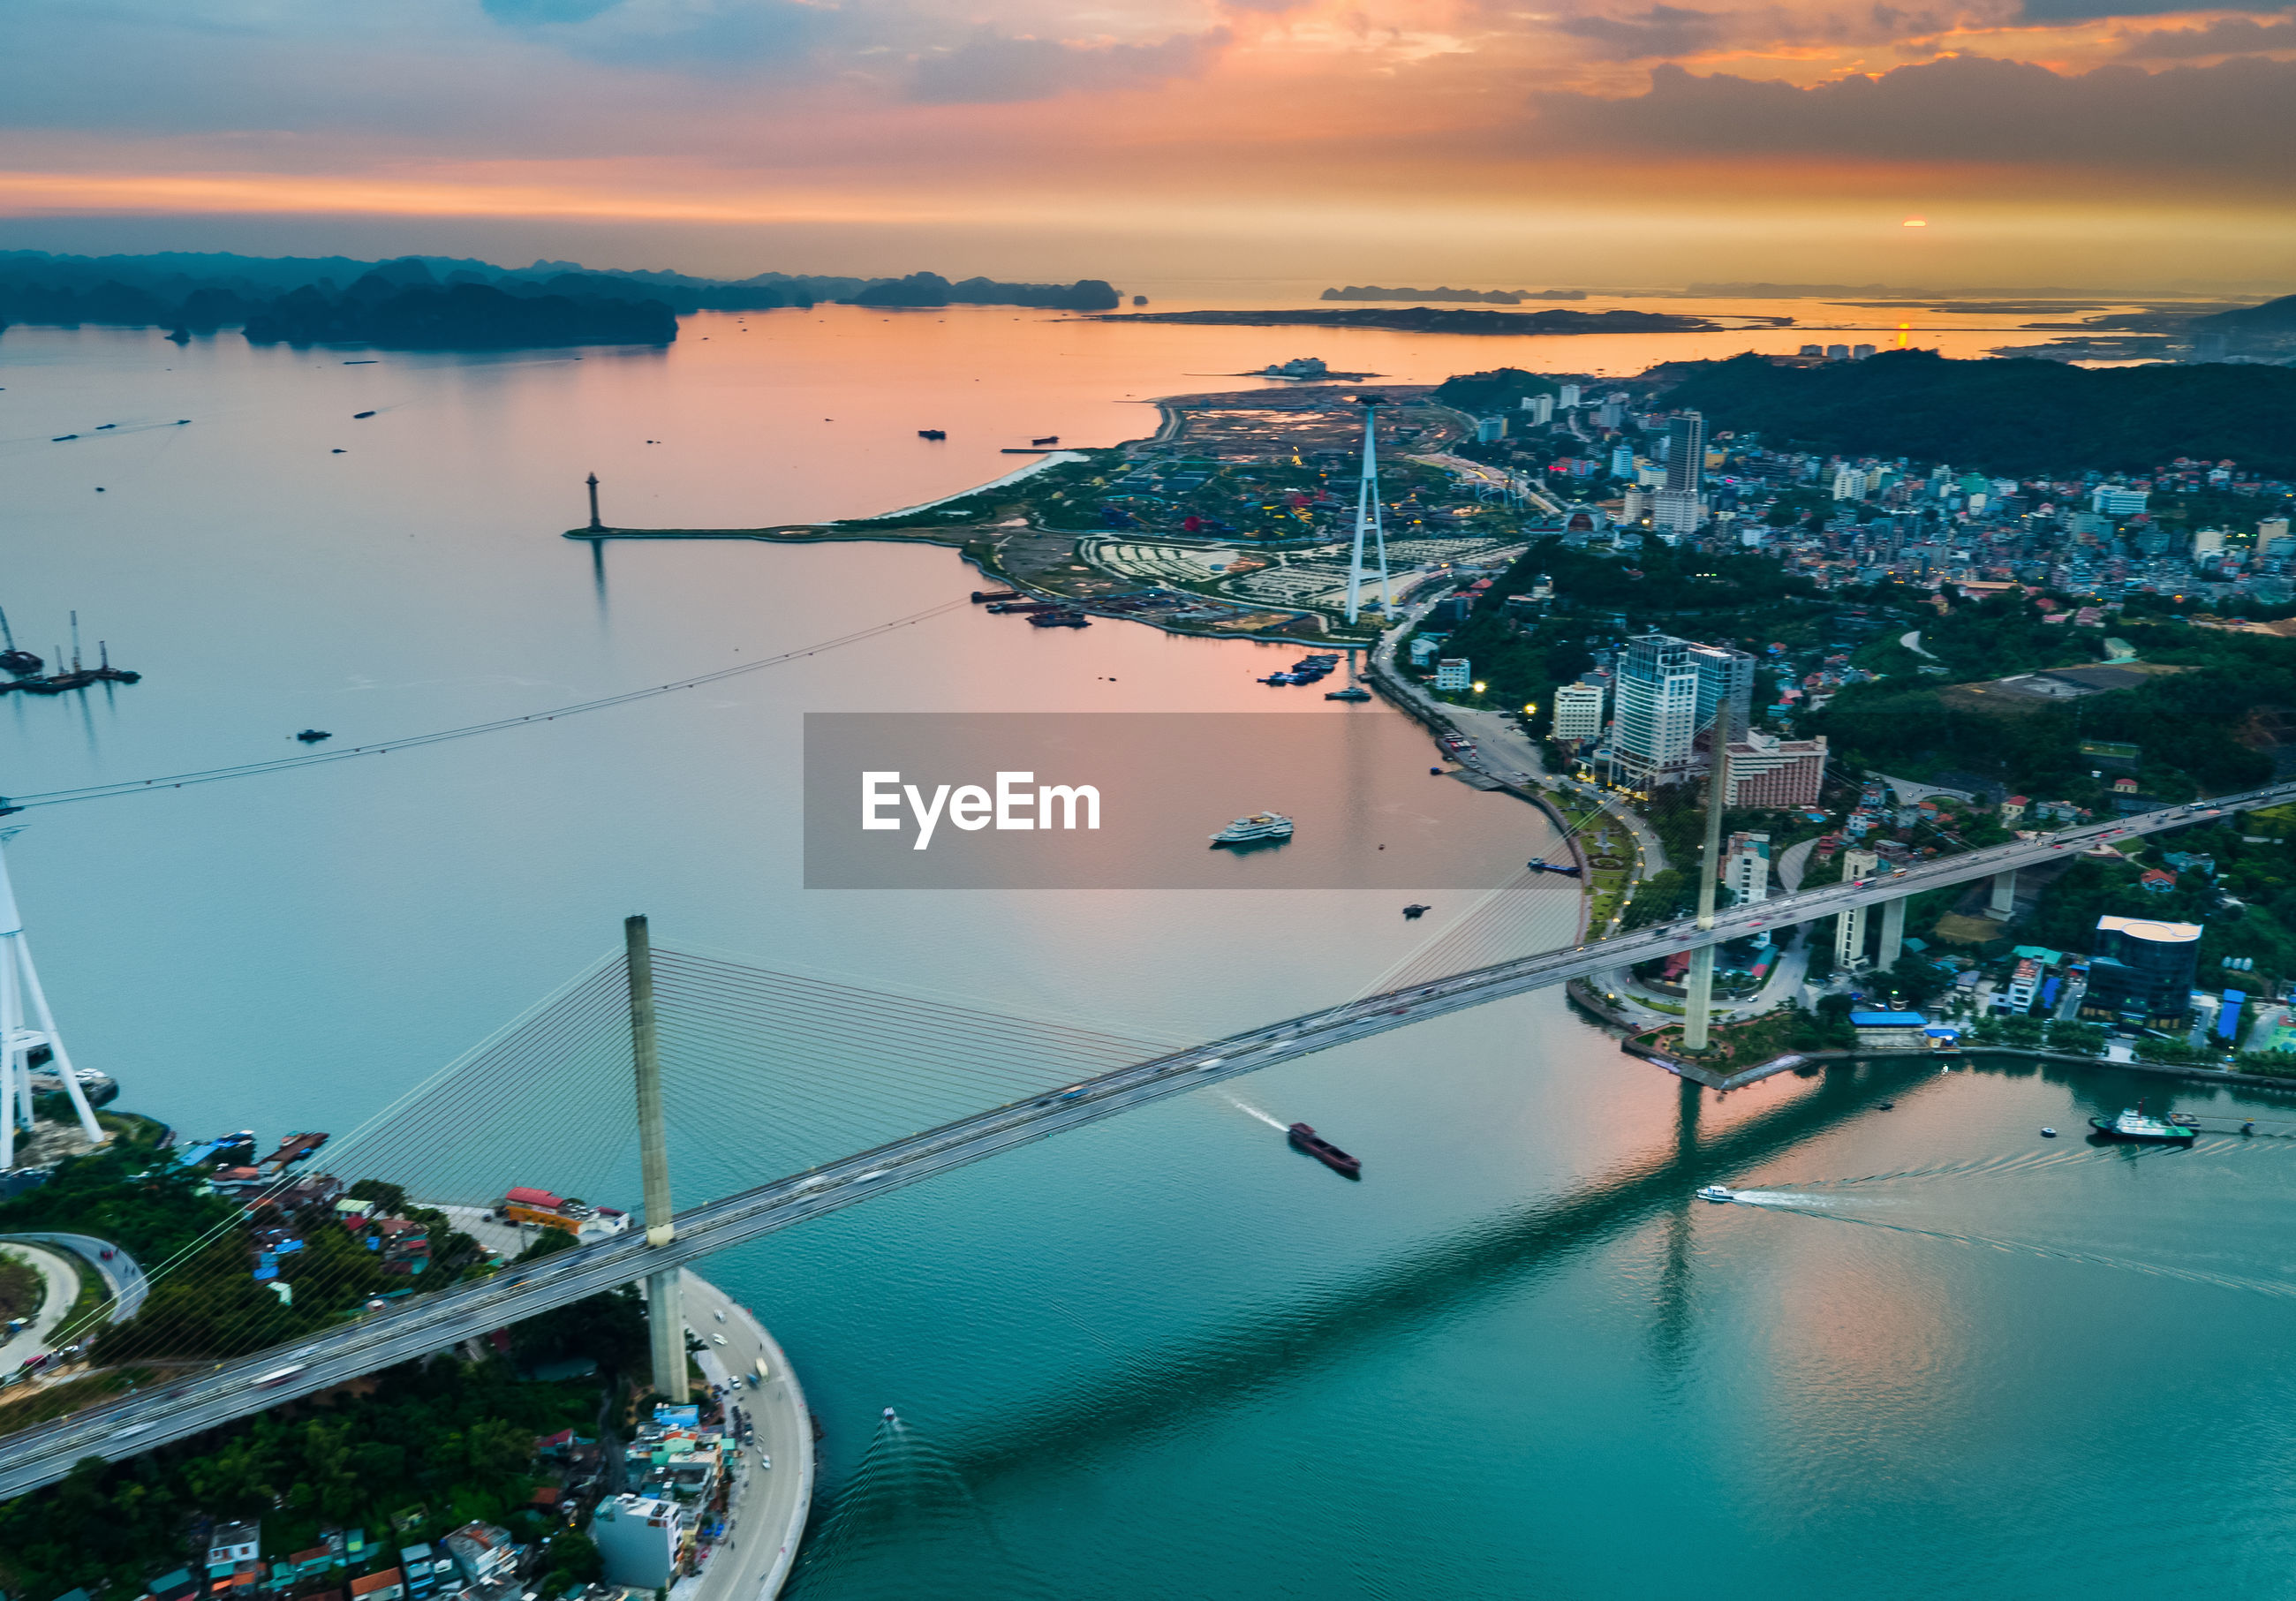 Aerial view of bridge over bay in city during sunset